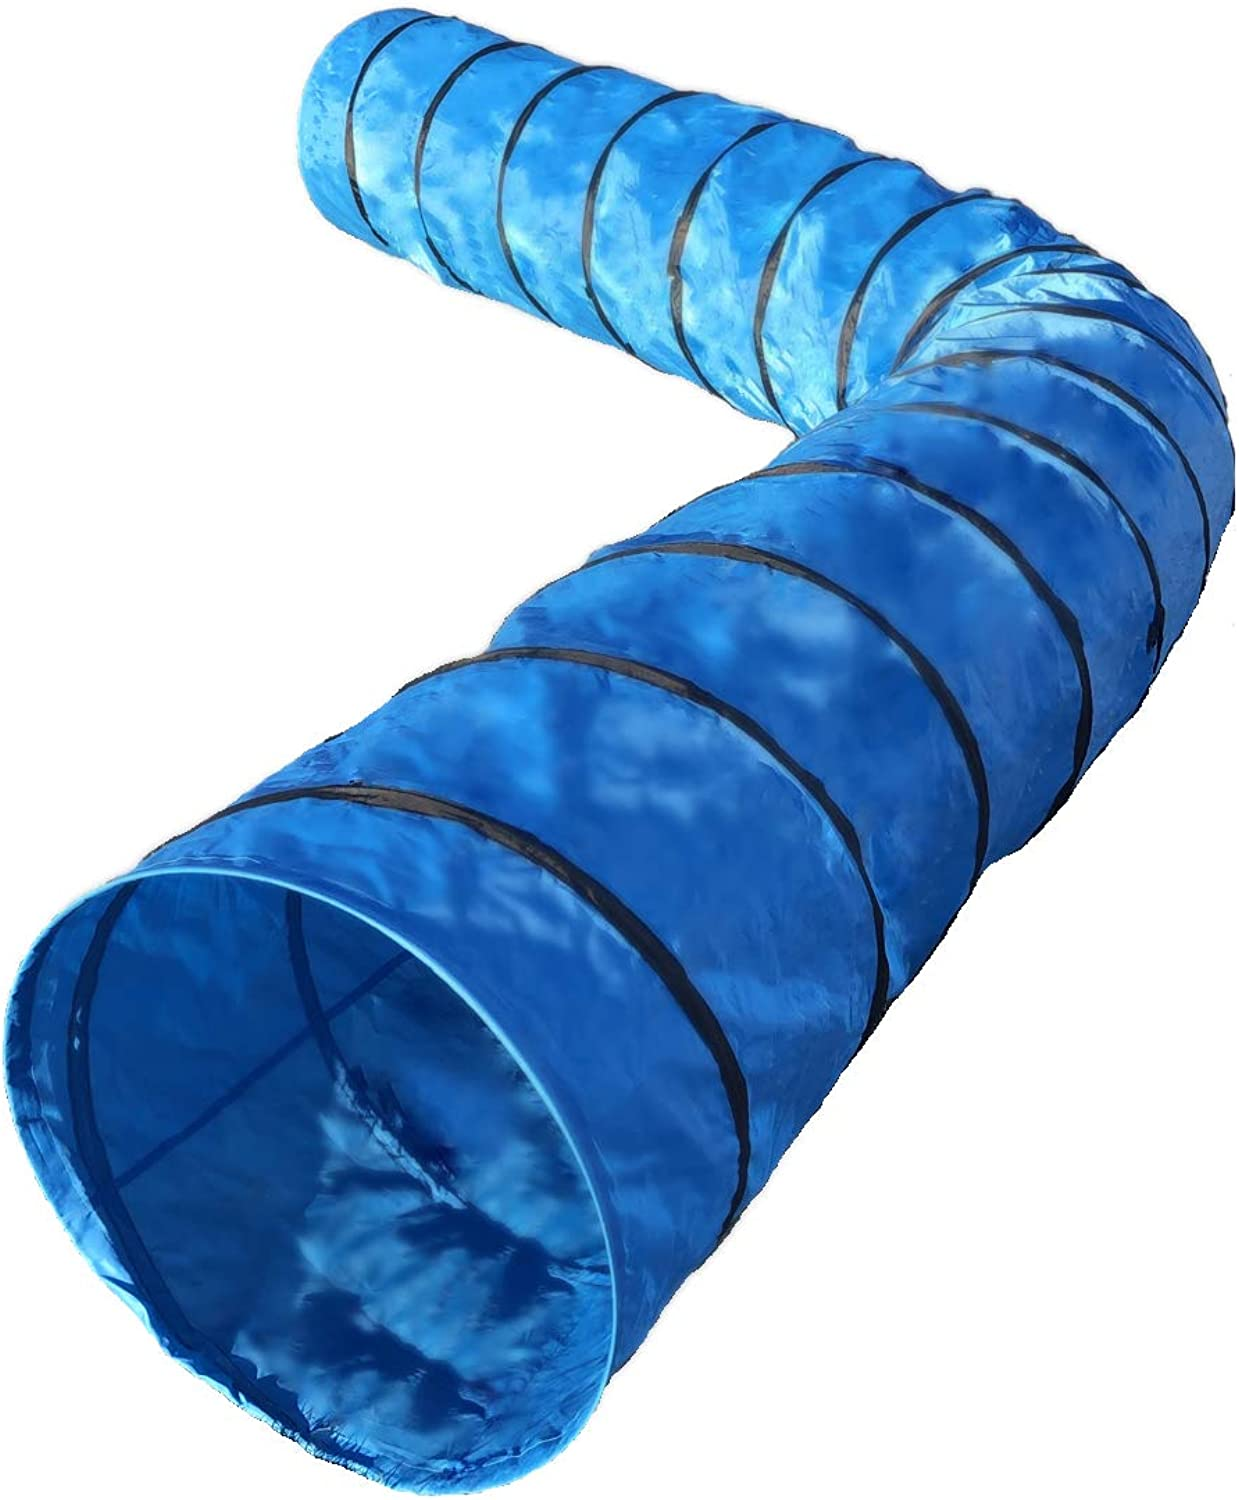 """Rise8 Studios Dog Agility Tunnel   Pet Training Equipment   Rip and Tear Resistant   Includes Carry Bag and Ground Stakes   Made of 420D Polyester 24"""" Diameter, 18' Long"""